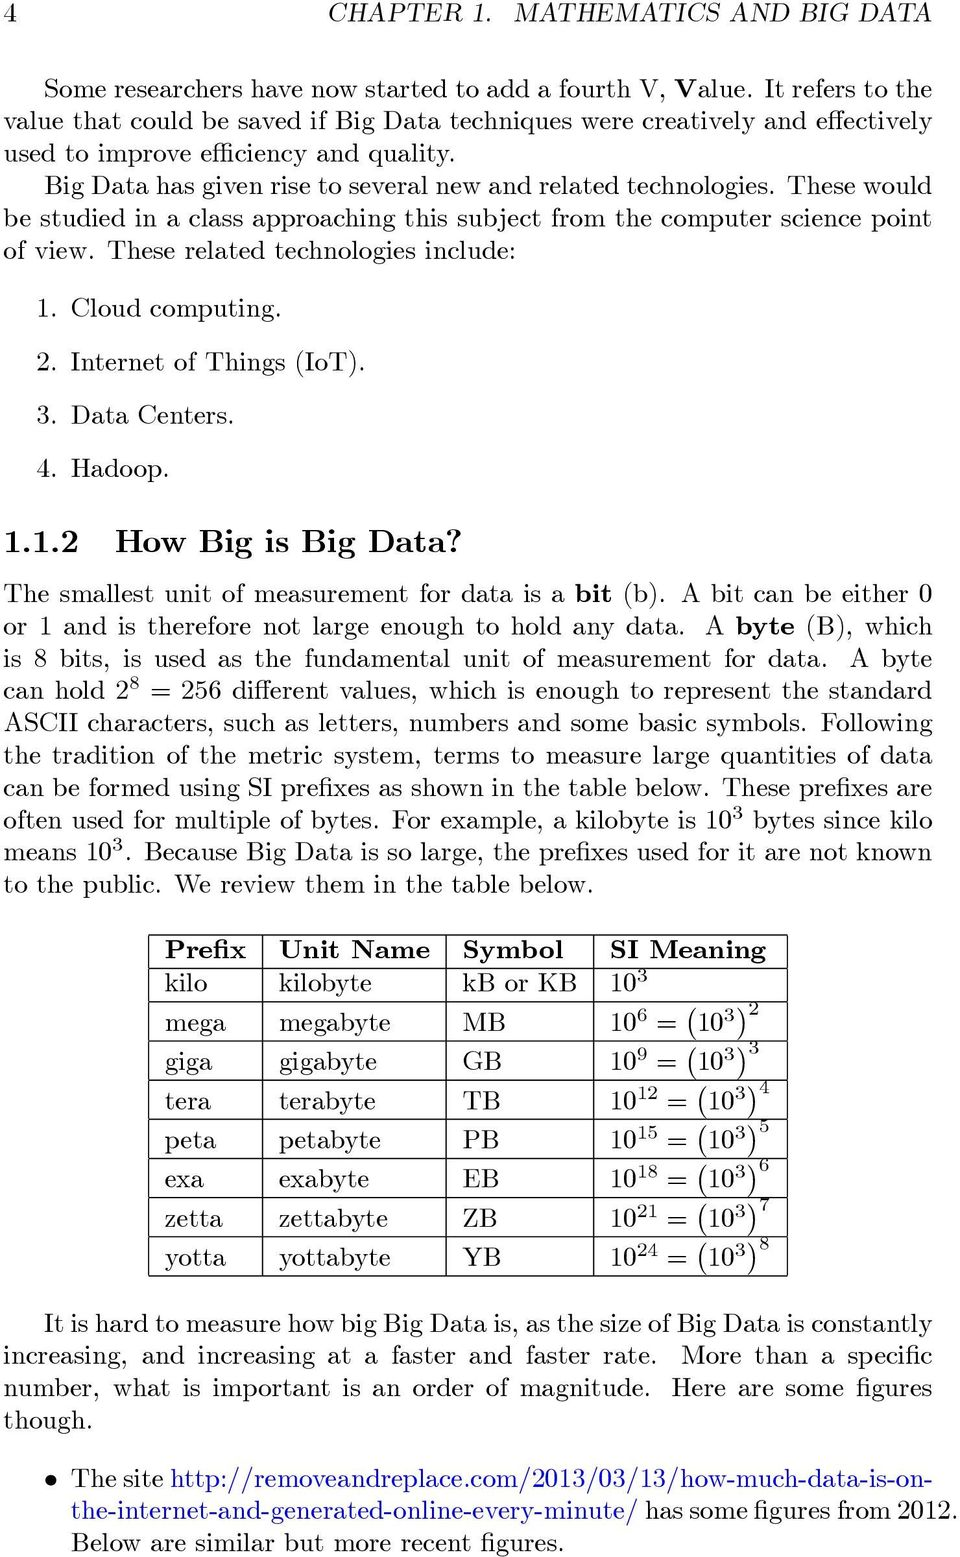 Big Data has given rise to several new and related technologies. These would be studied in a class approaching this subject from the computer science point of view.